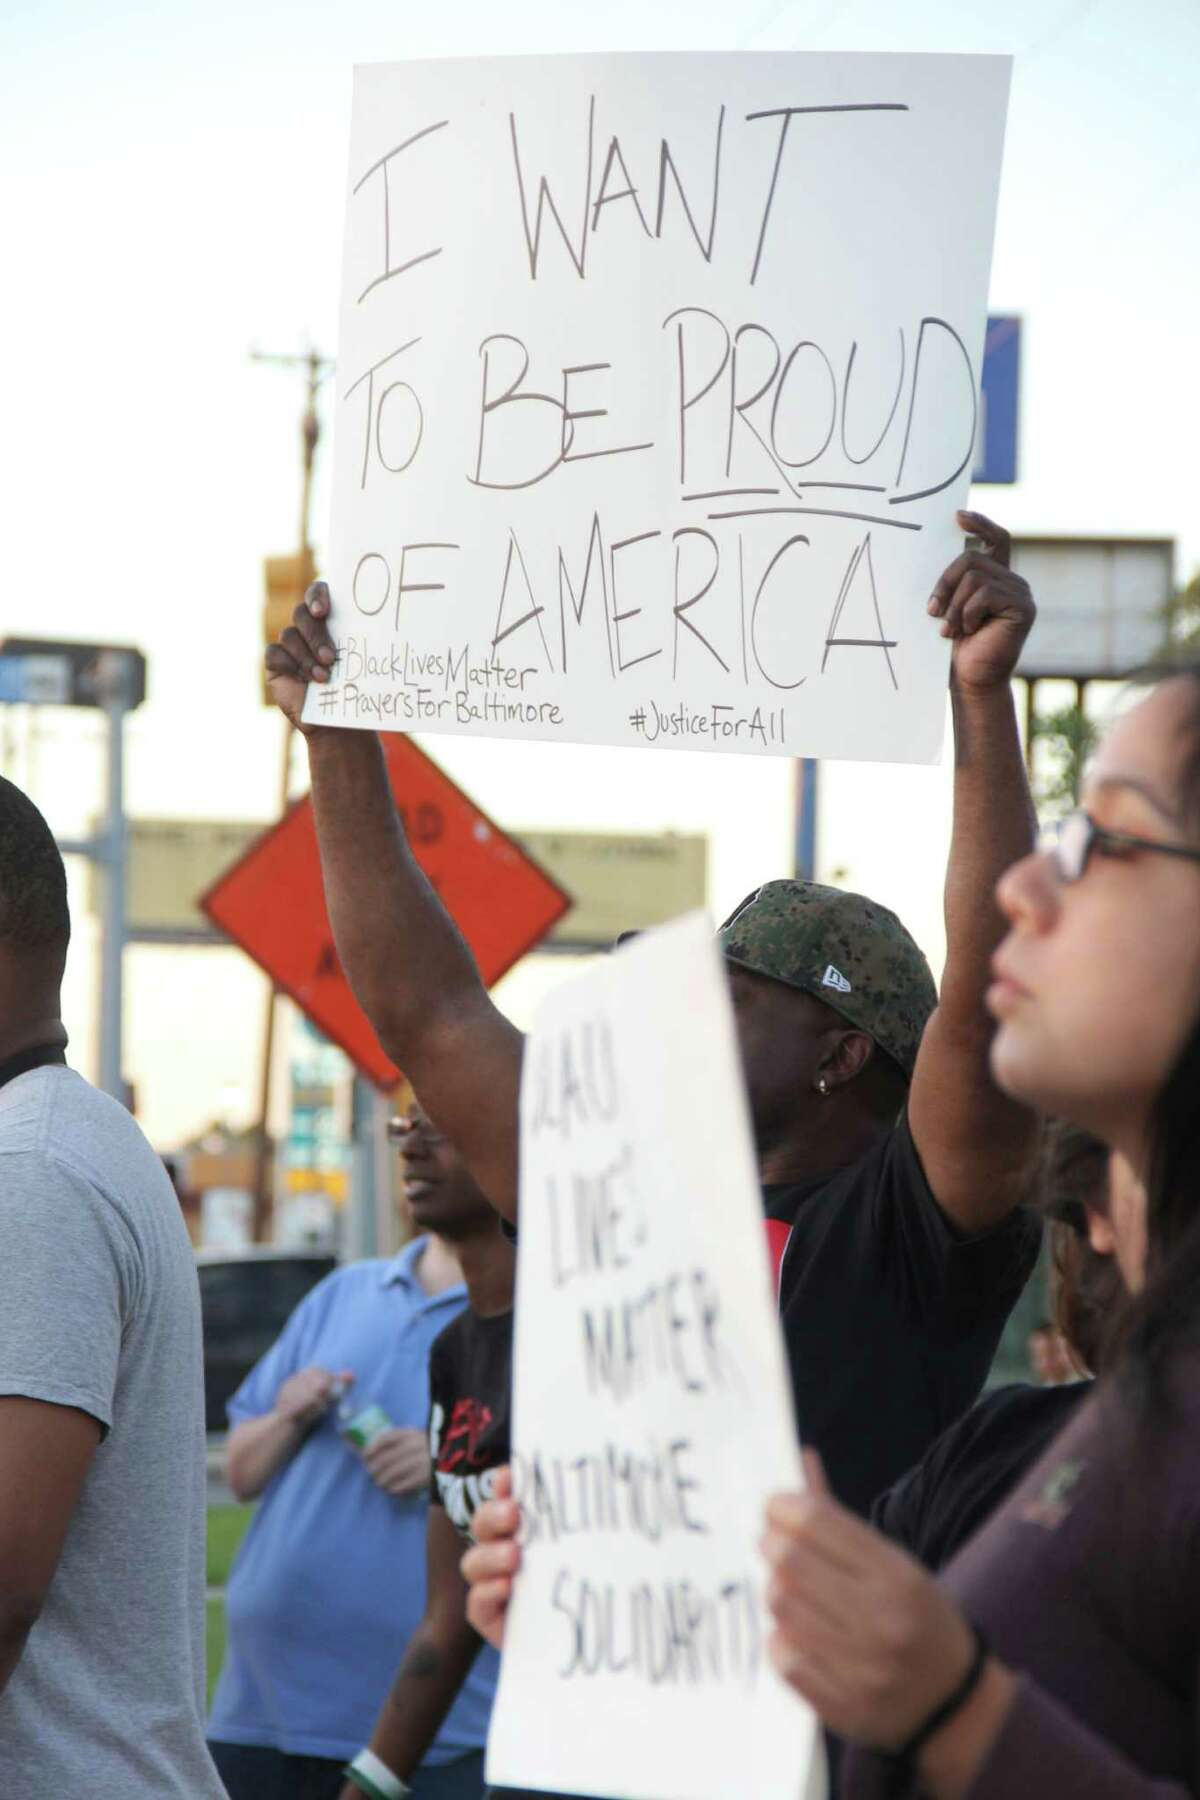 Protesters in San Antonio took to Perrin Beitel and Loop 410 on Wednesday evening to show support and solidarity in the wake of the death of Freddie Gray, who reportedly died of a spinal injury while in Baltimore police custody.